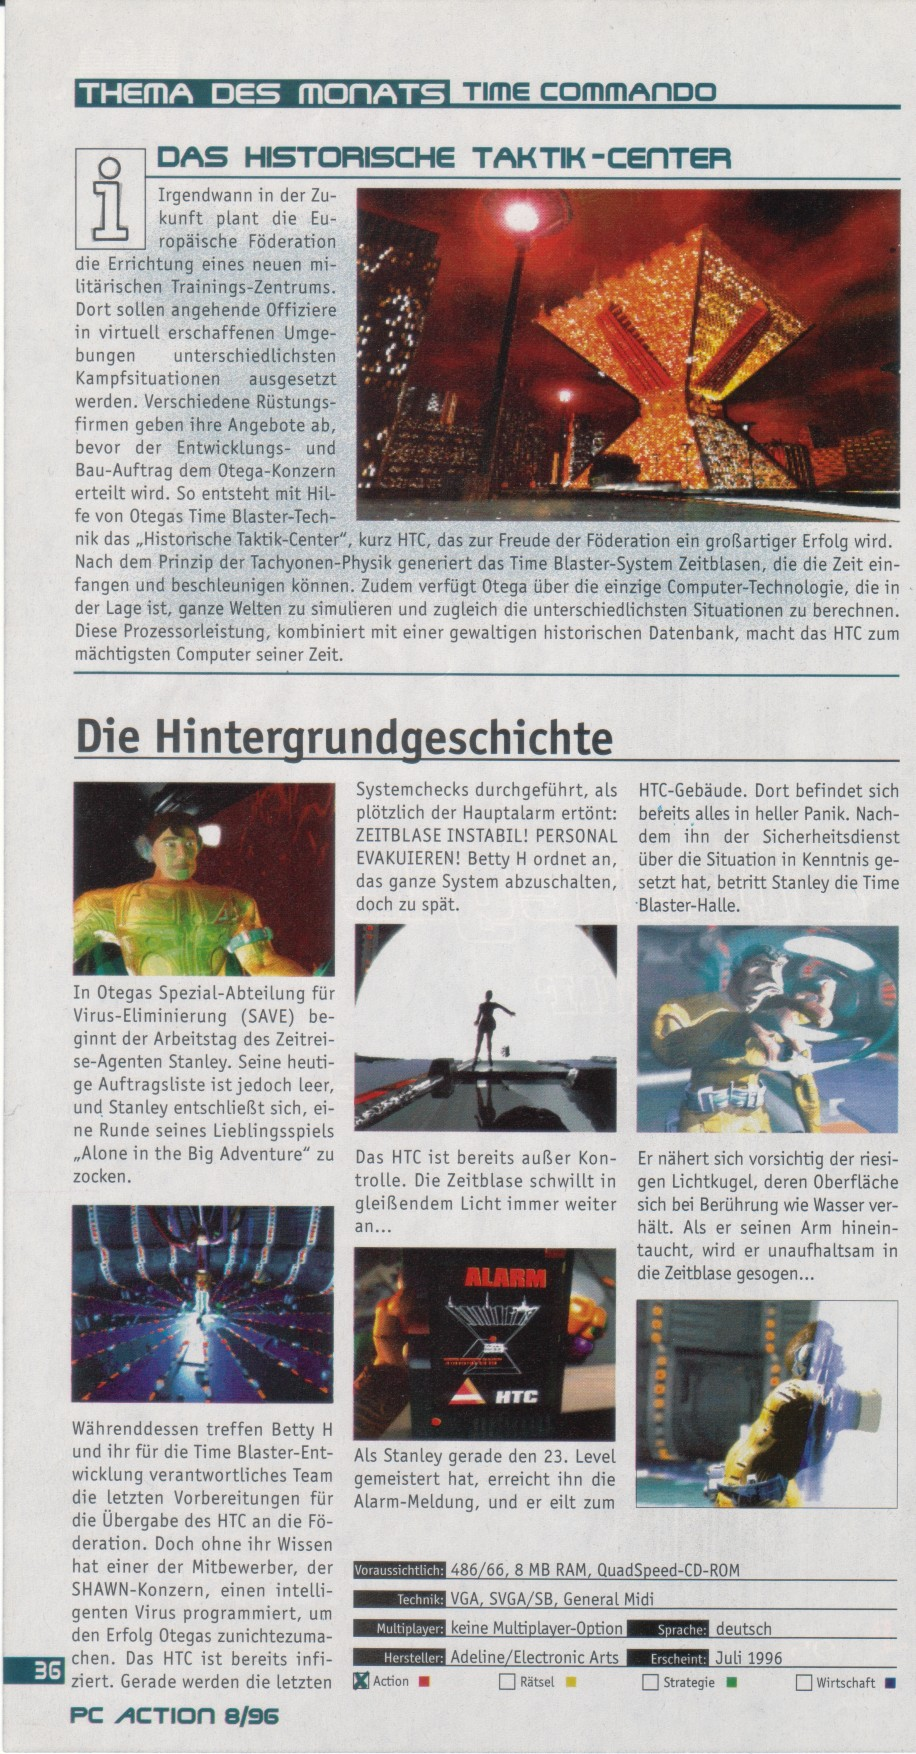 PC Action 1996-08 [6]